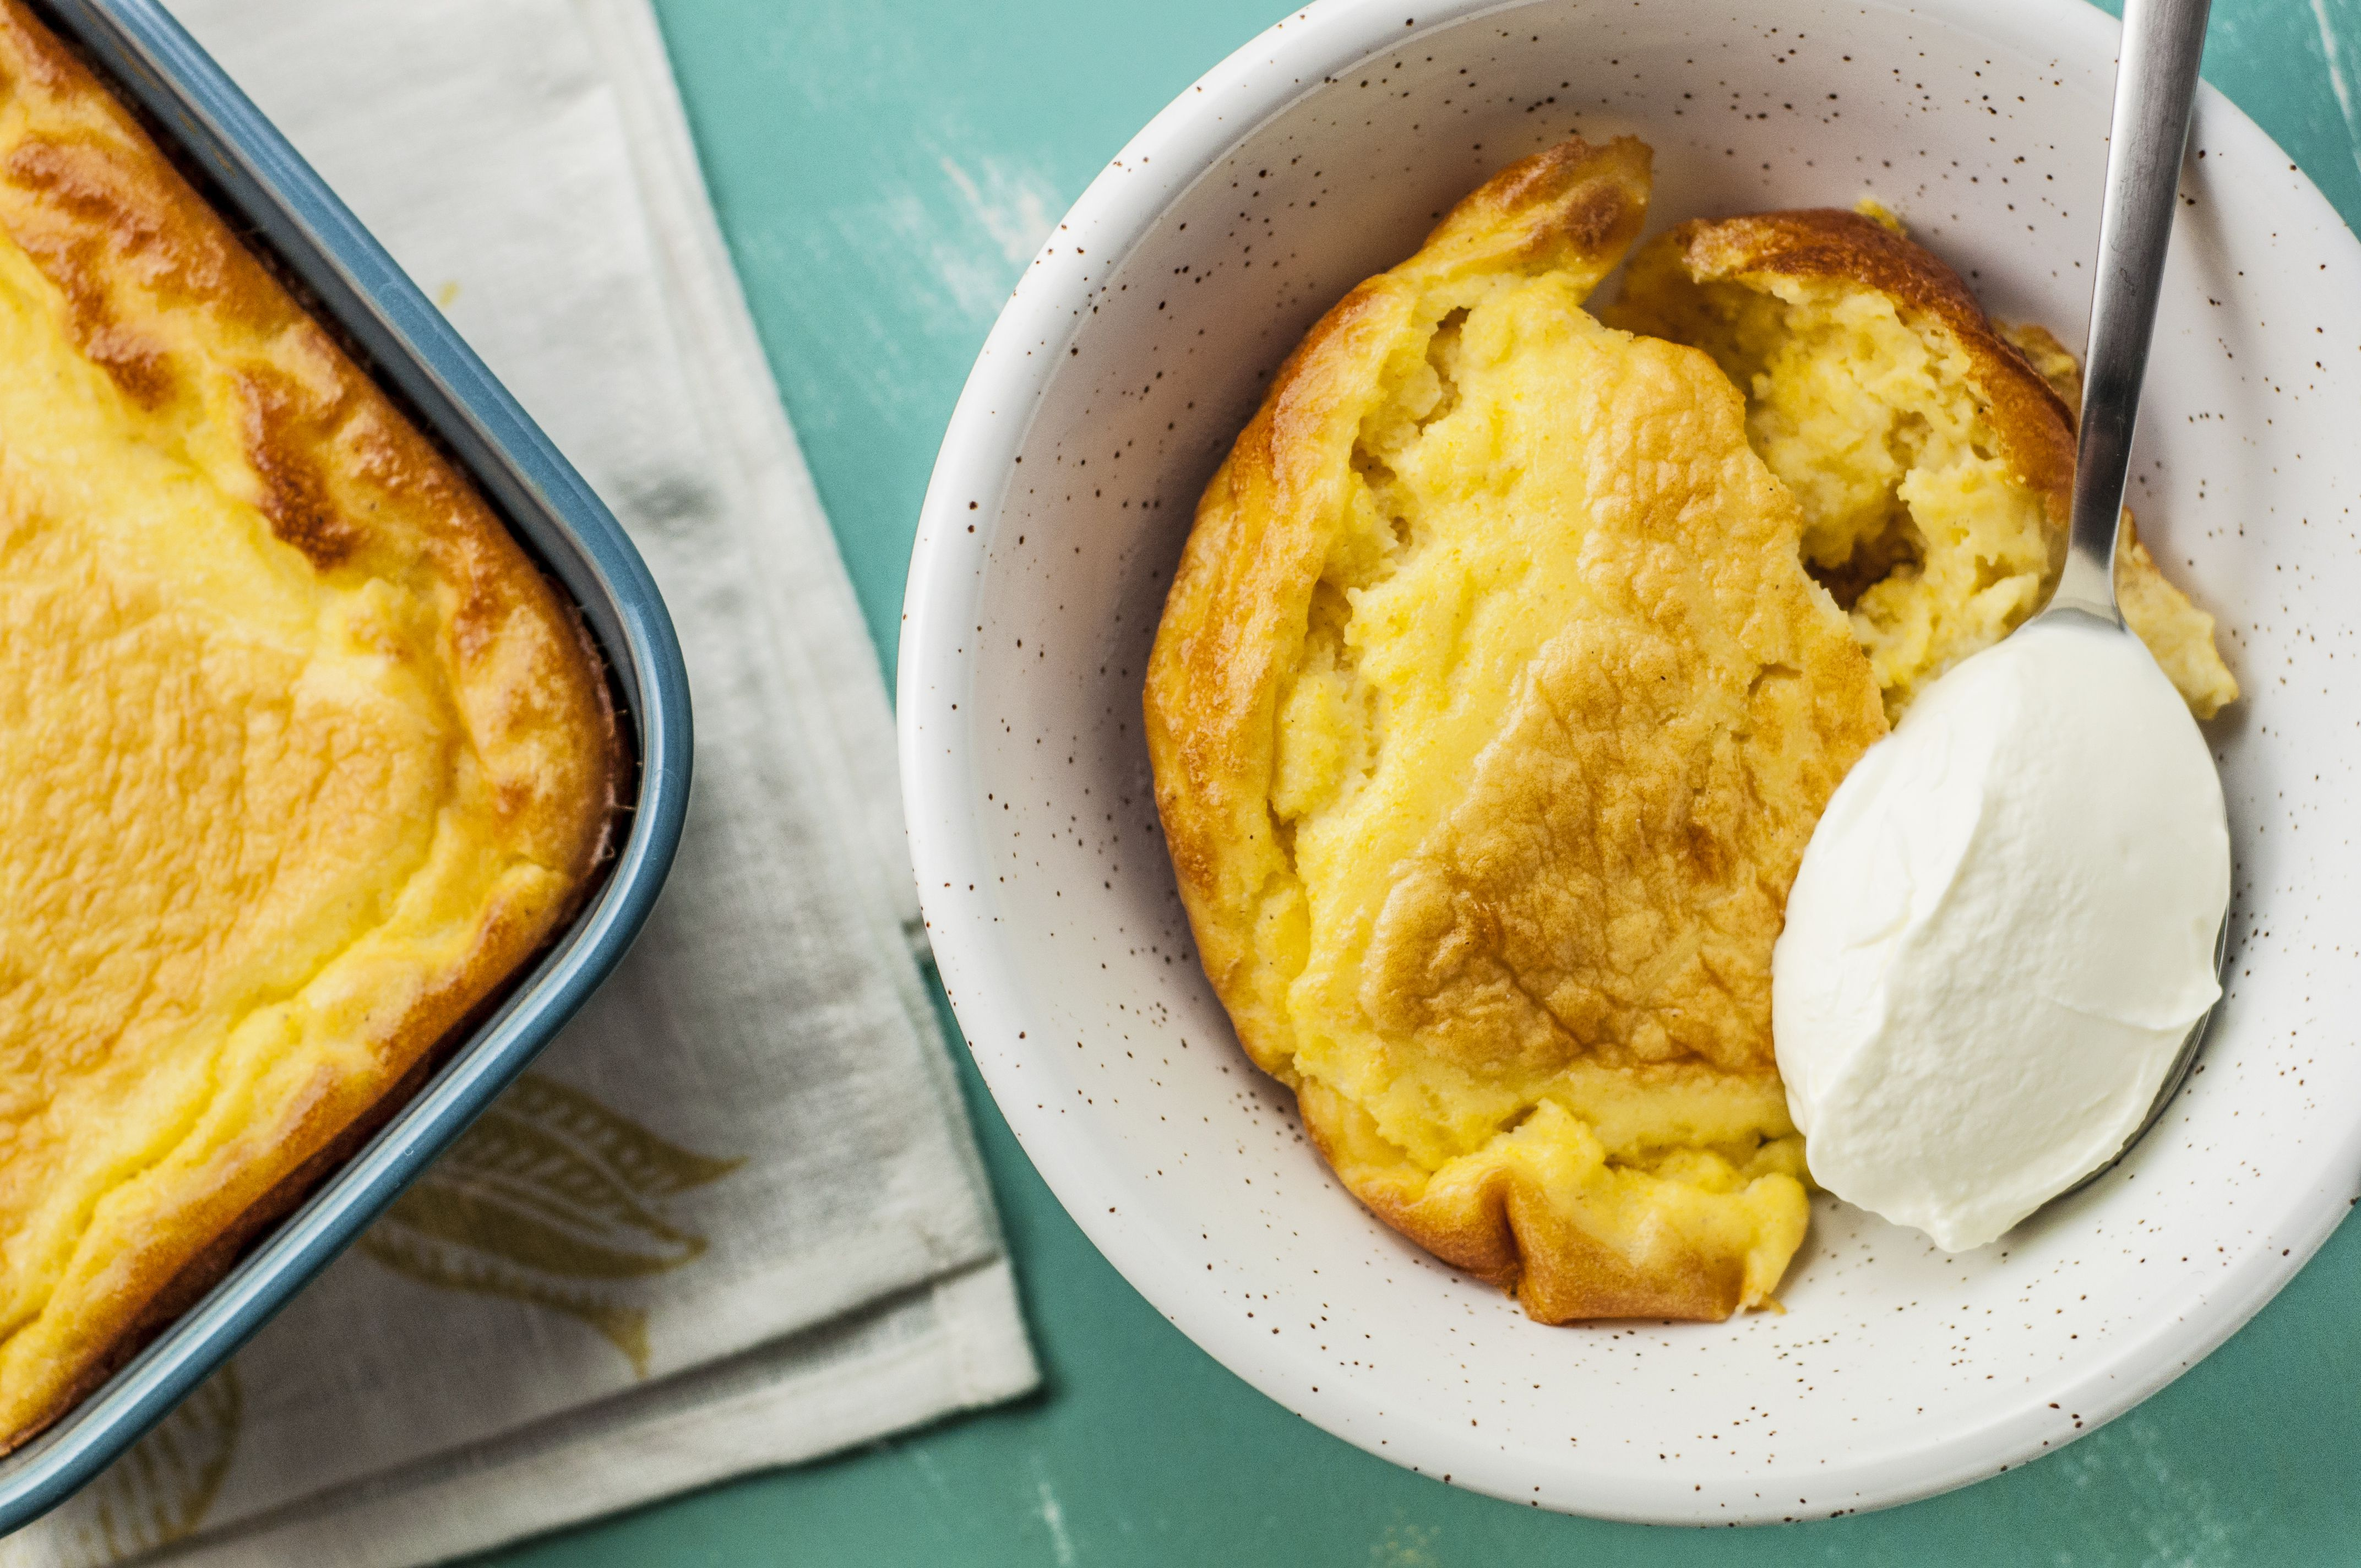 Serving Southern spoon bread in a bowl with butter